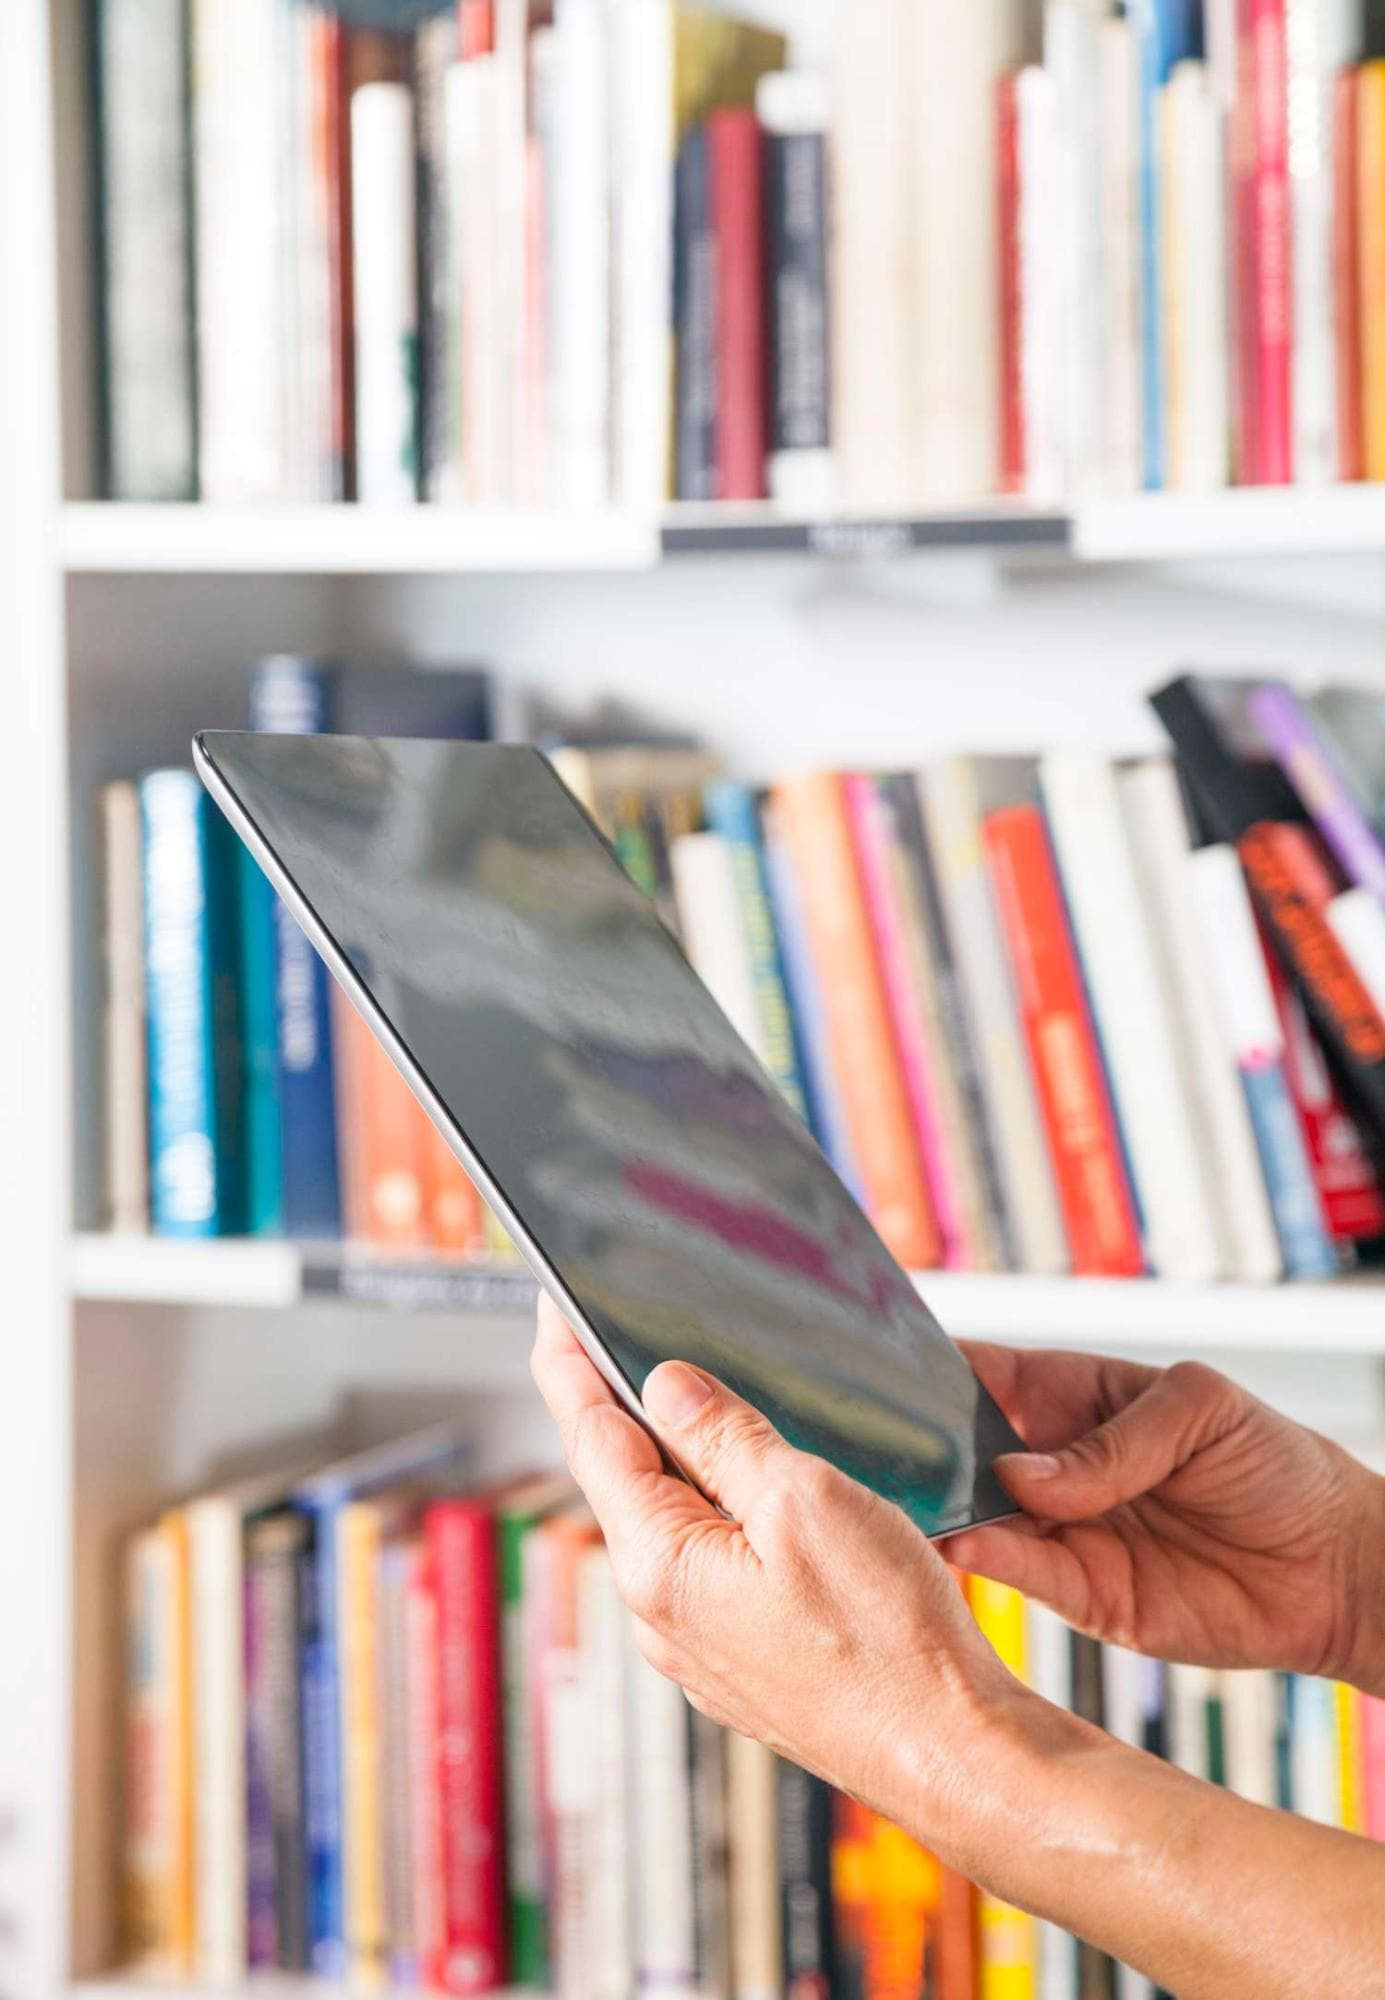 Person using a tablet with a  shelf of books in background